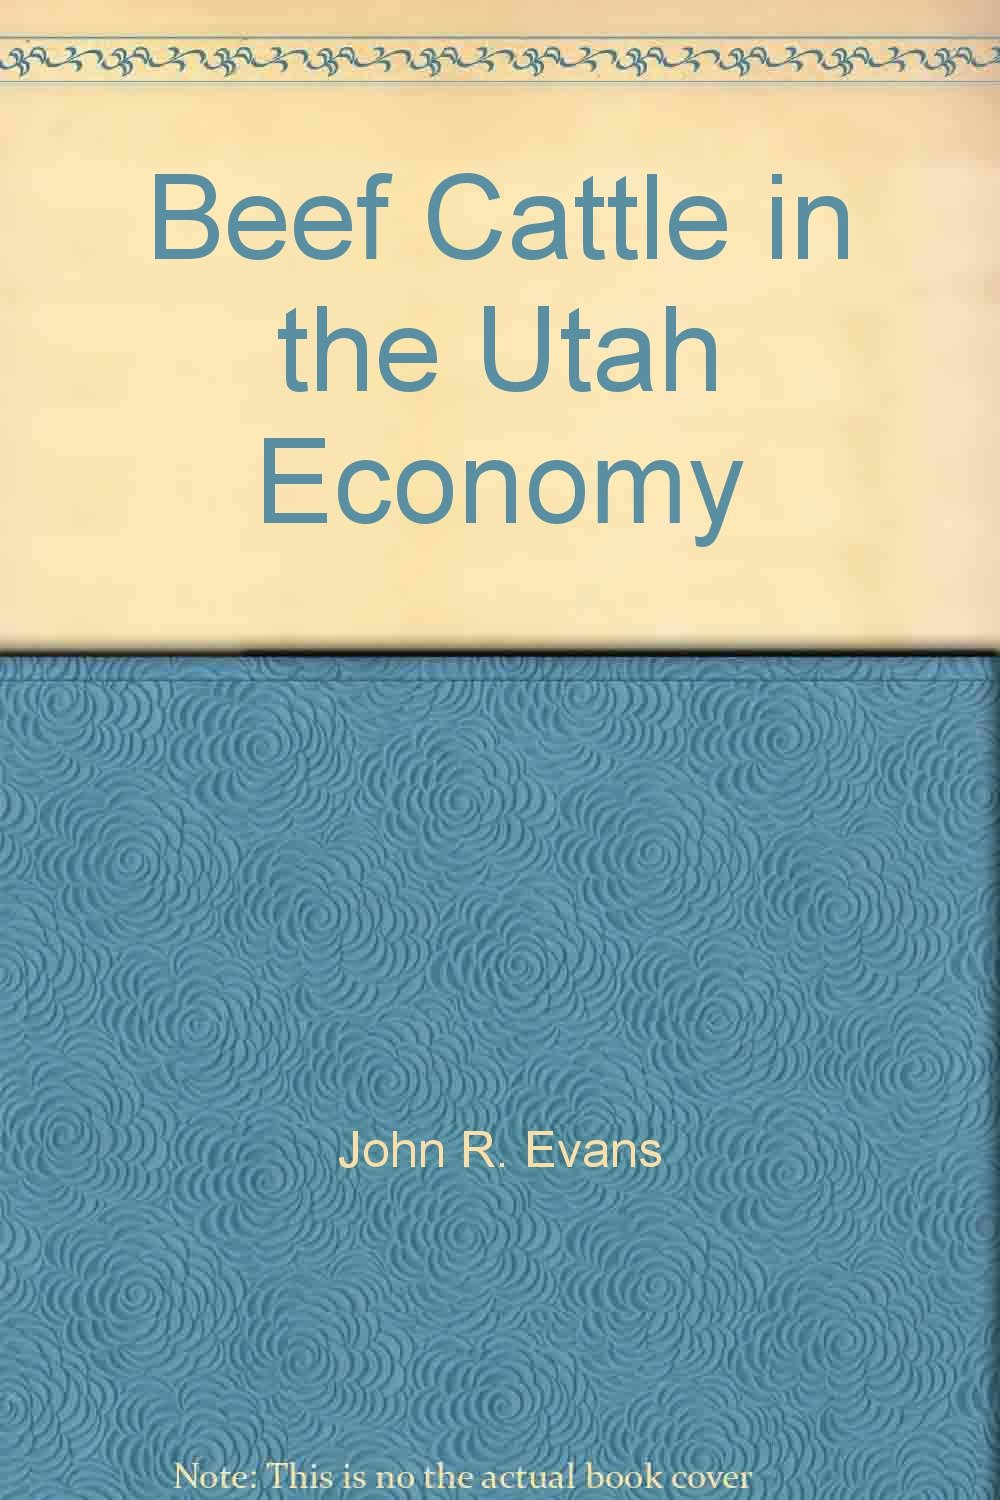 Beef Cattle in the Utah Economy